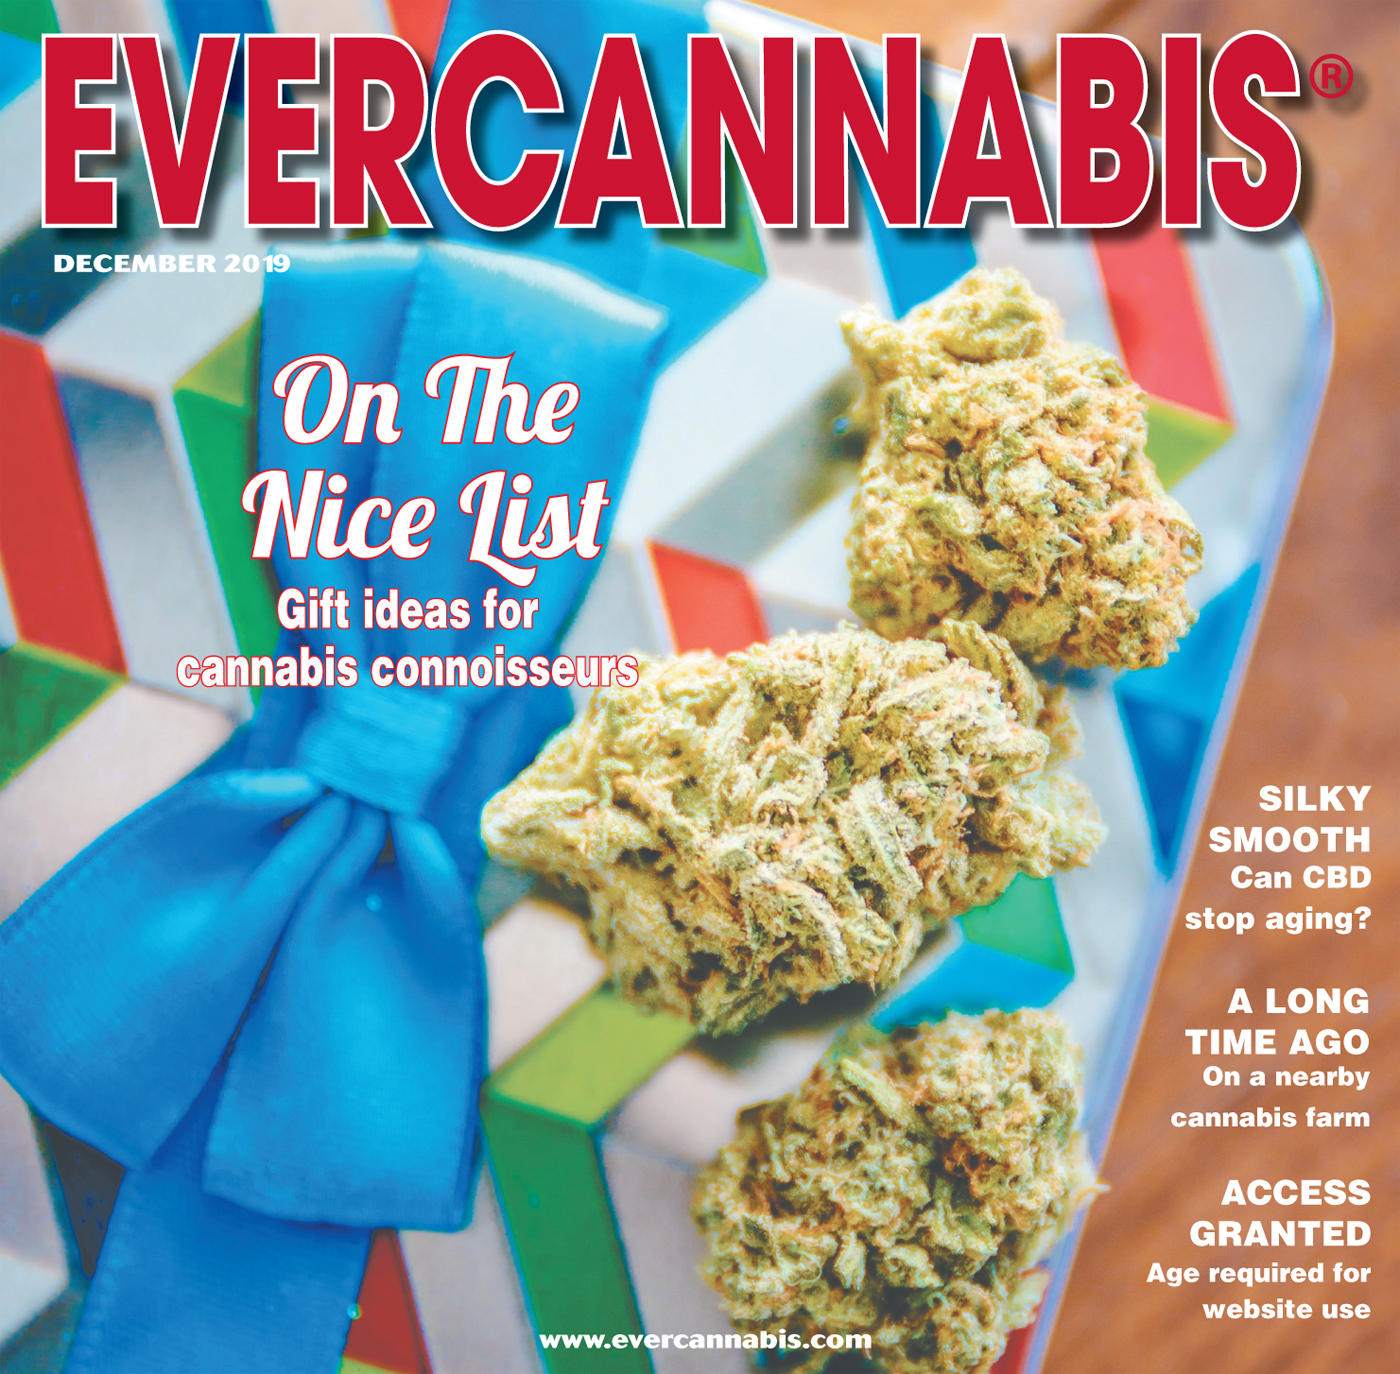 Cover of current EVERCANNABIS